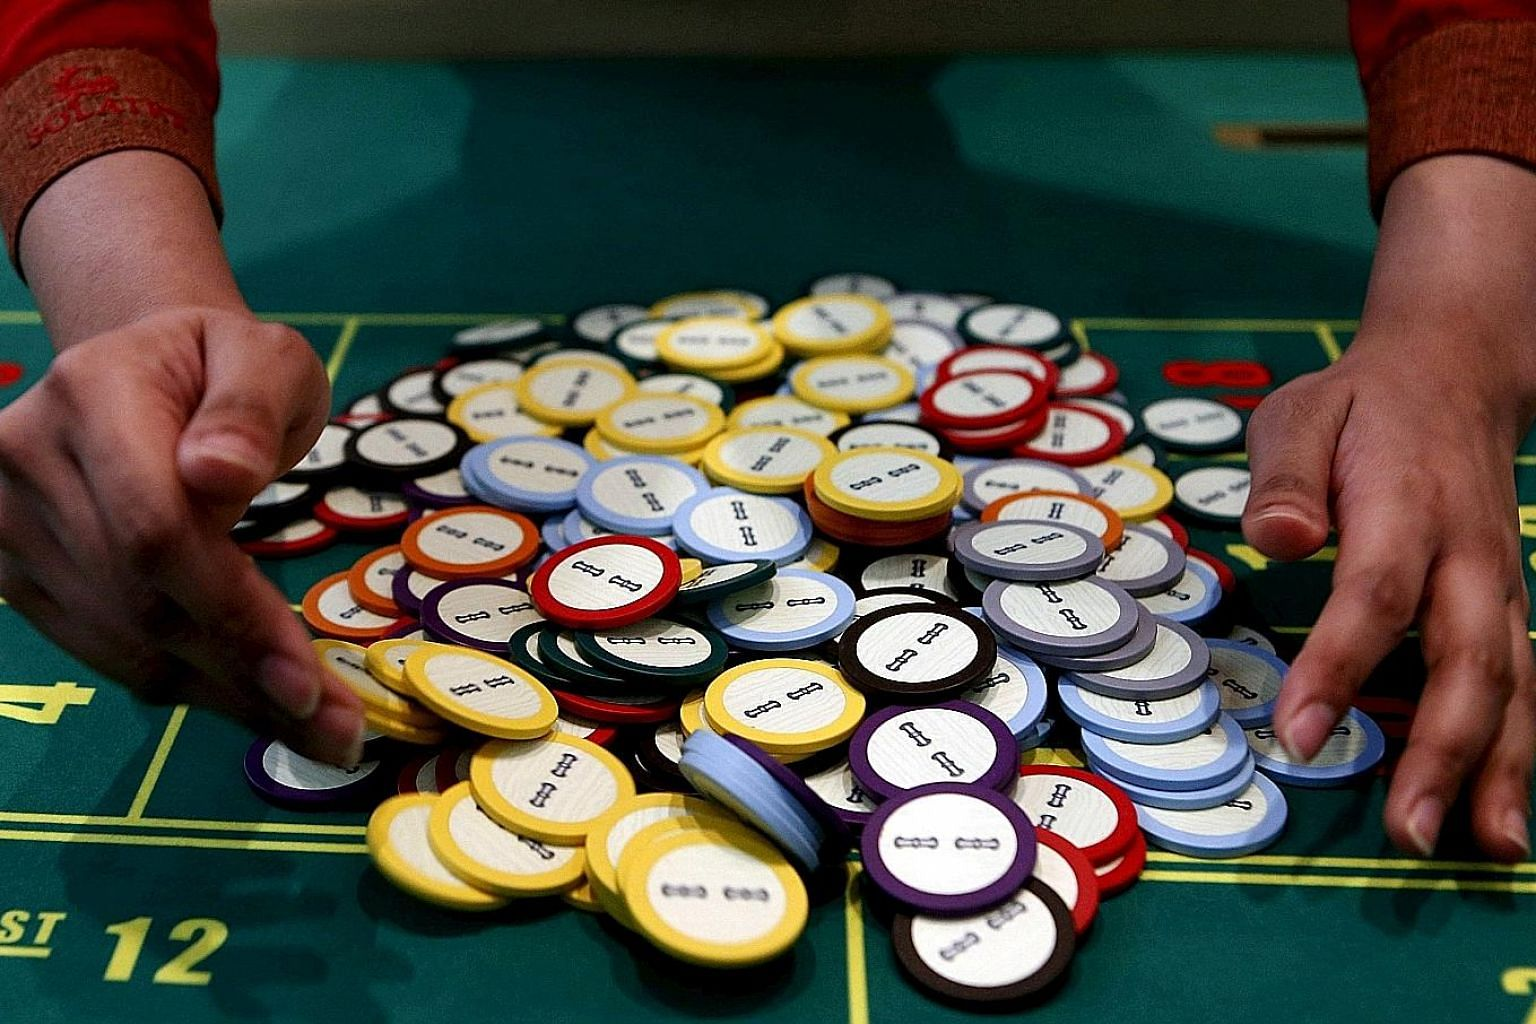 A roulette table at a casino in Manila. Casinos in the Philippines raked in nearly $4.2 billion in overall revenue last year.